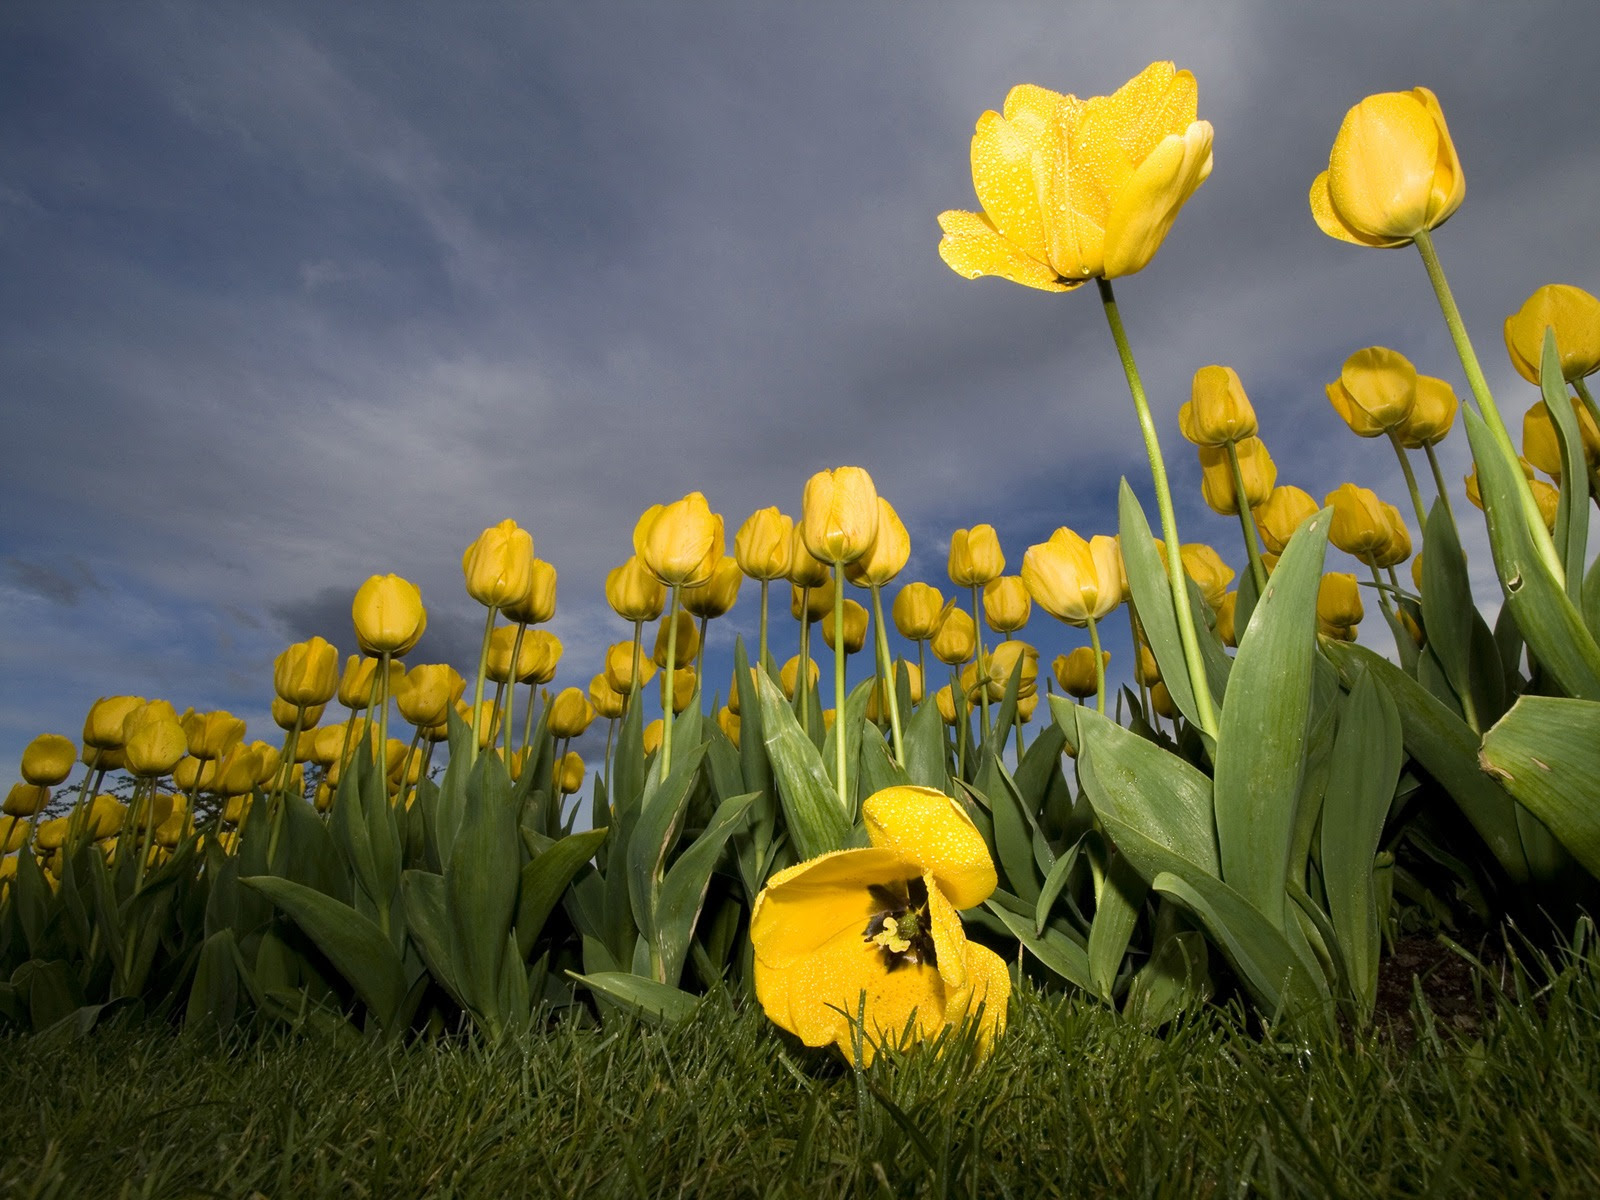 Yellow Tulips Wallpaper Flowers Nature Wallpapers In Jpg Format For